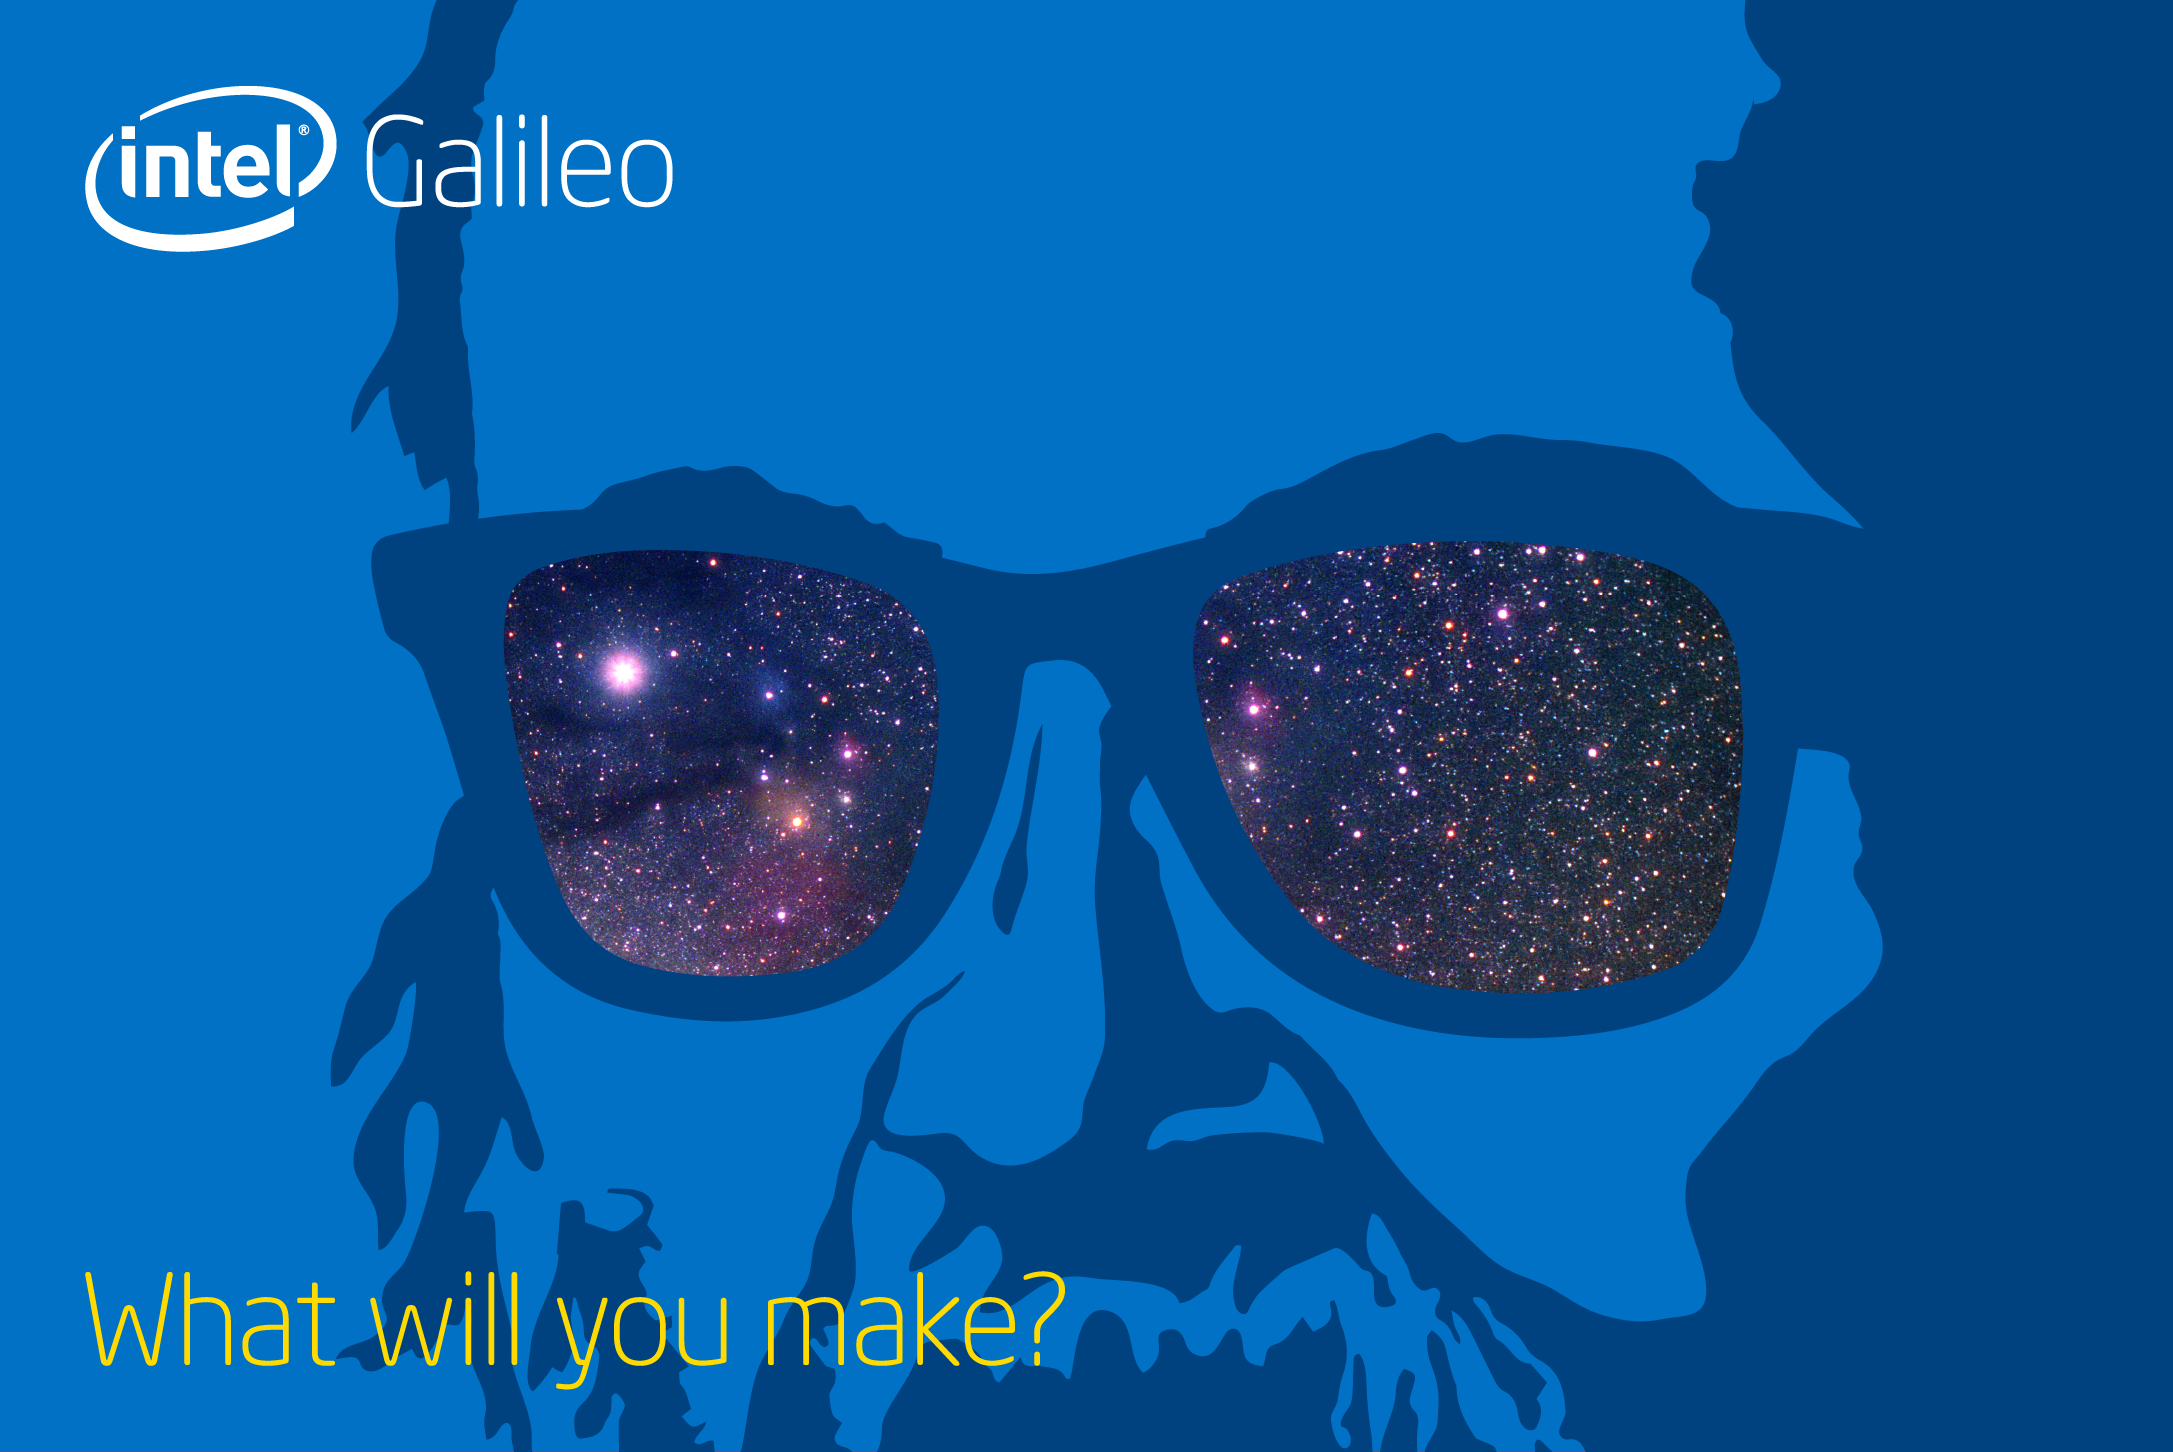 1285903-intel-galileo-quark-photo-couverture-boite-octobre-2013